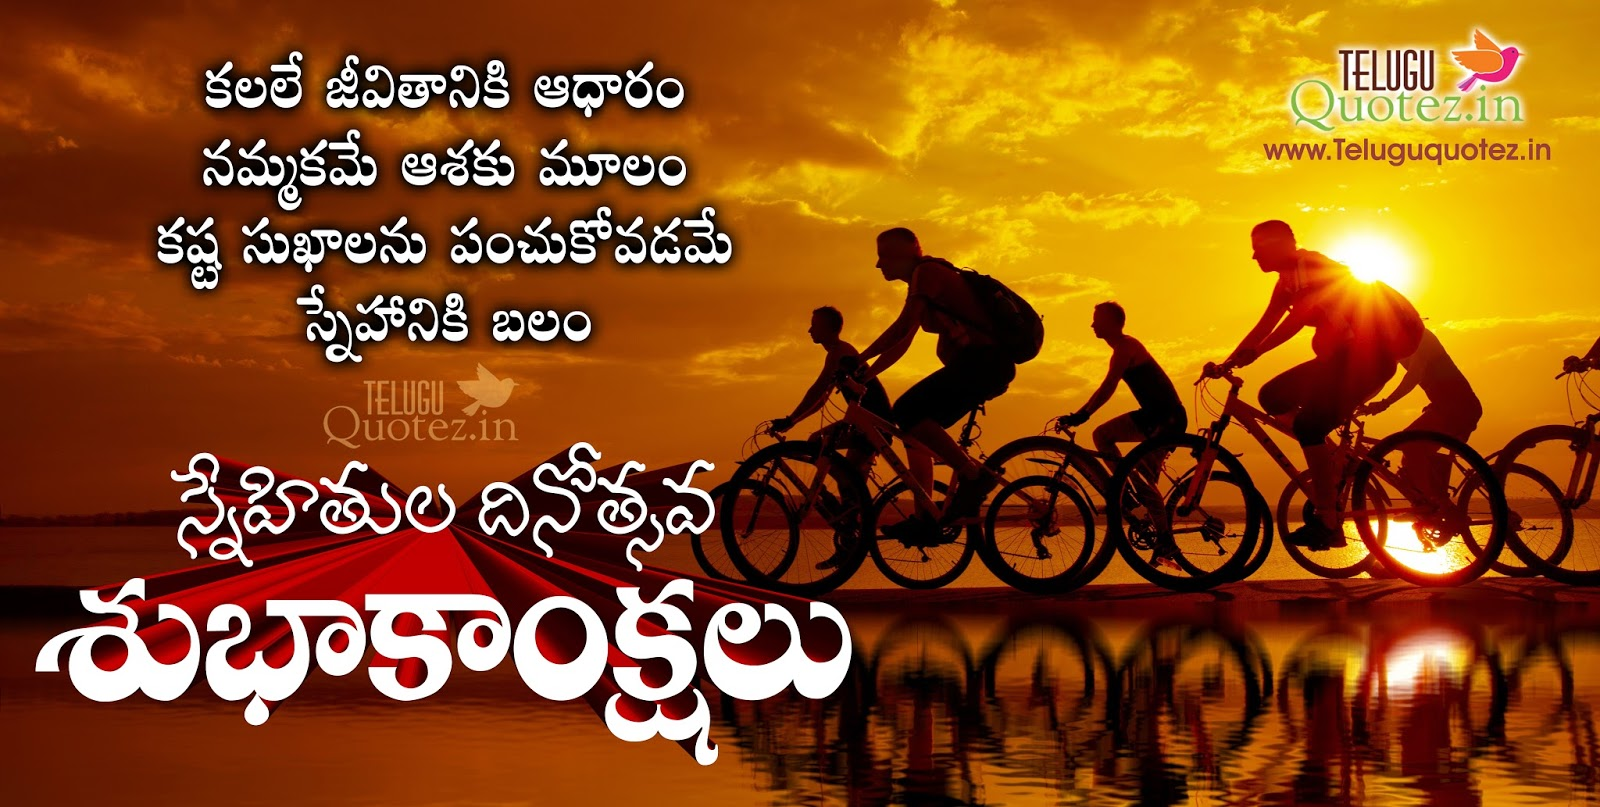 Friendship day pictures and free quotes images teluguquotez